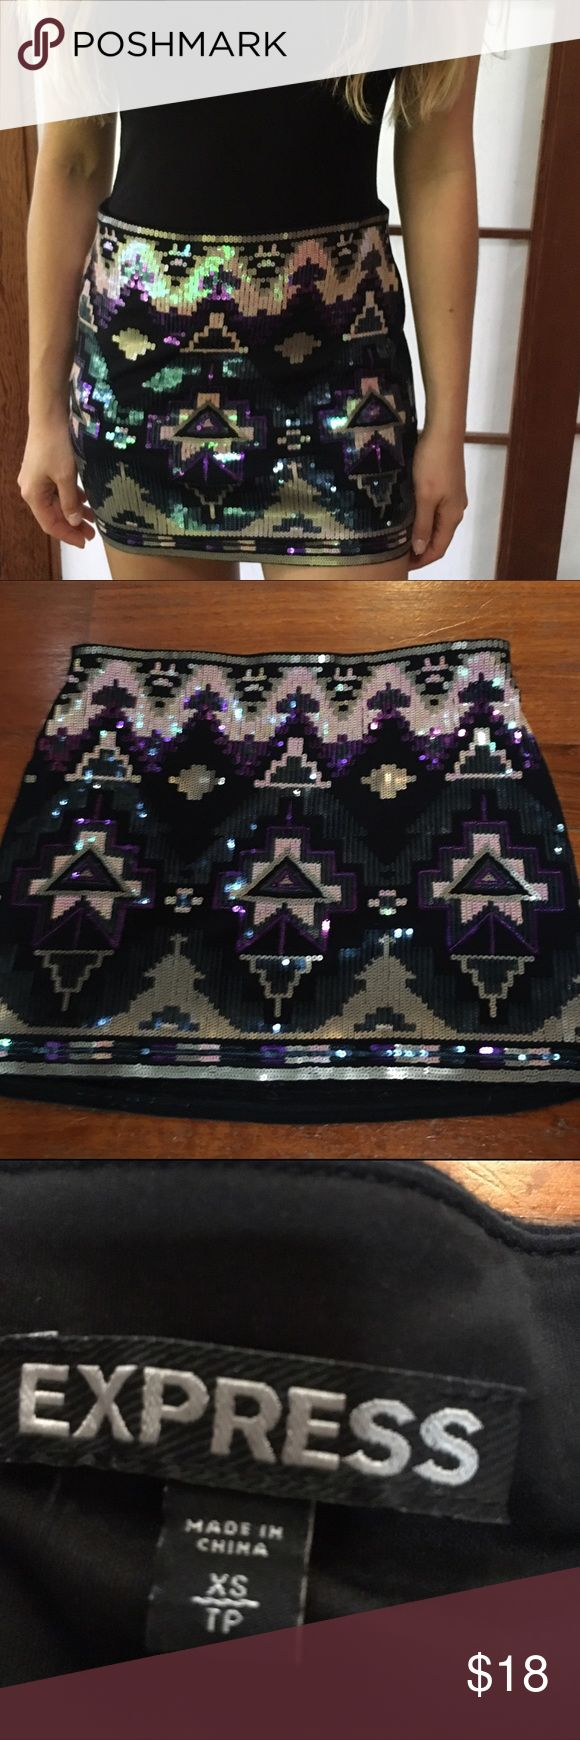 Express Aztec sequin skirt Fun mini skirt! Size XS, by express. Feel free to make an offer! Express Skirts Mini